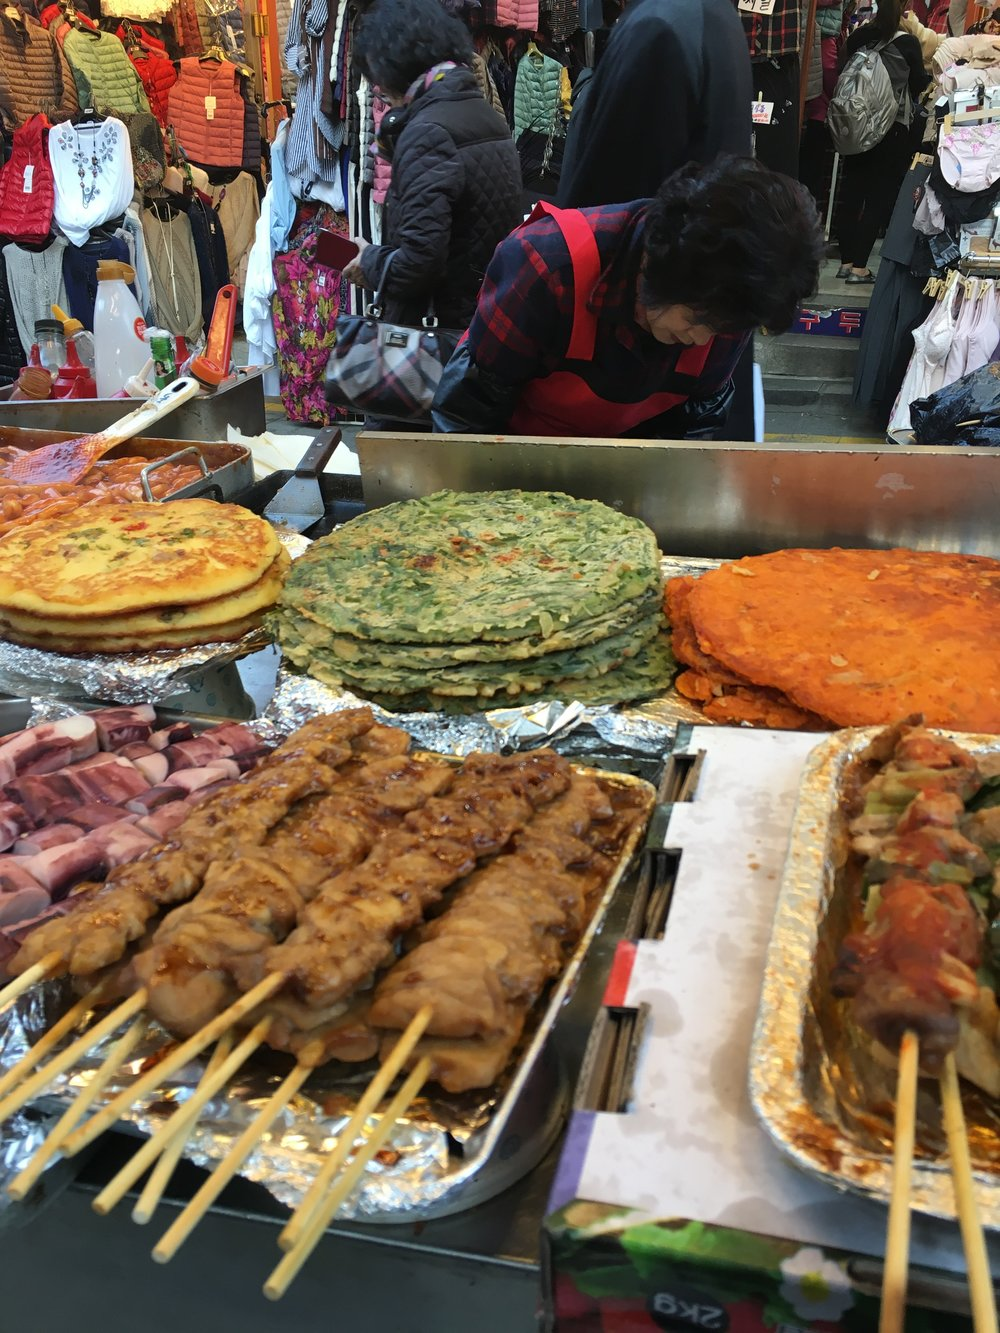 Do you think this street food would make you sick?